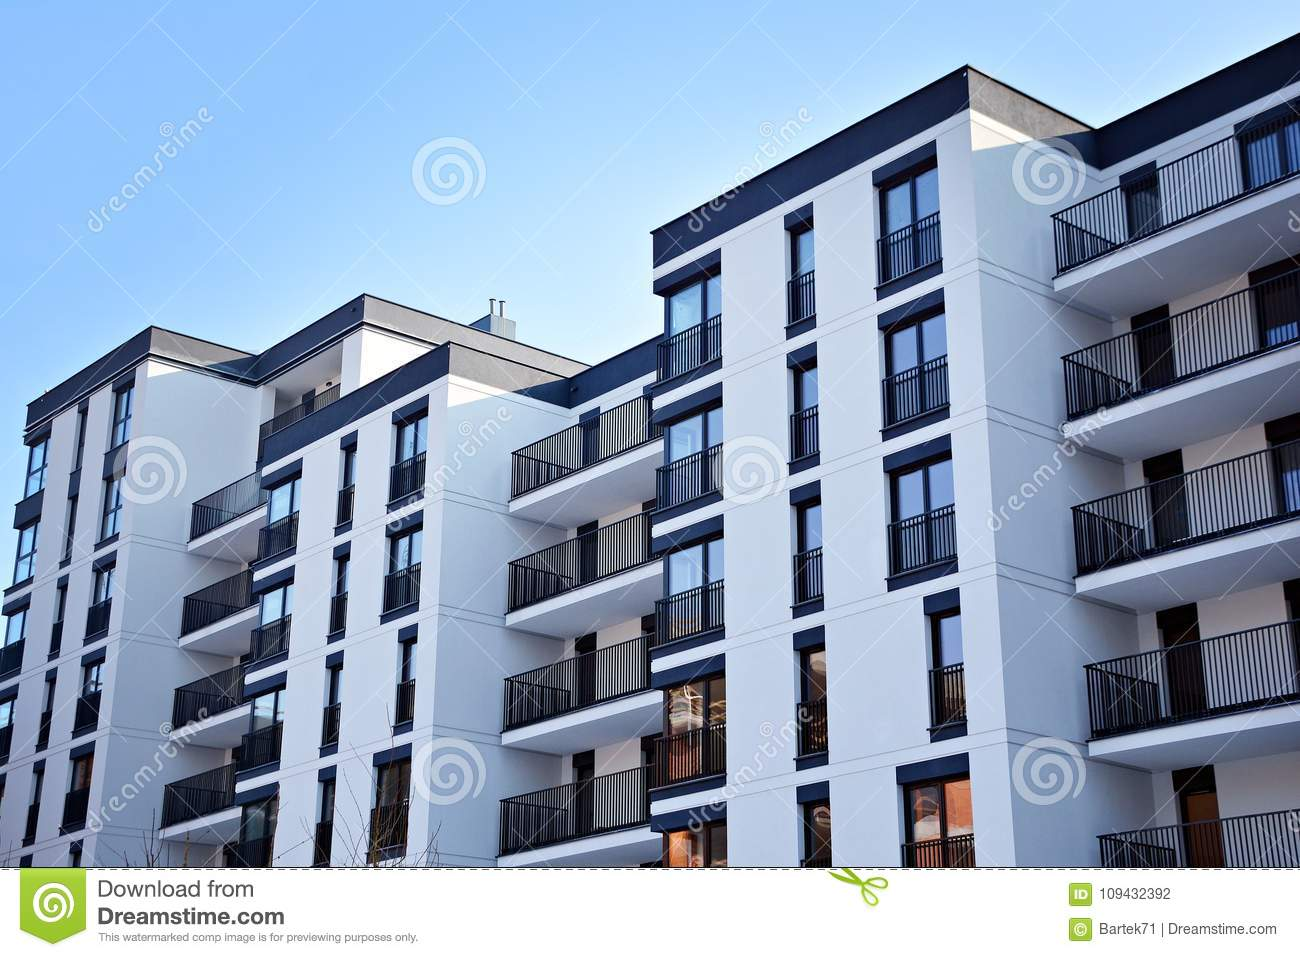 Facade Of A Modern Apartment Building Stock Photo - Image of ...